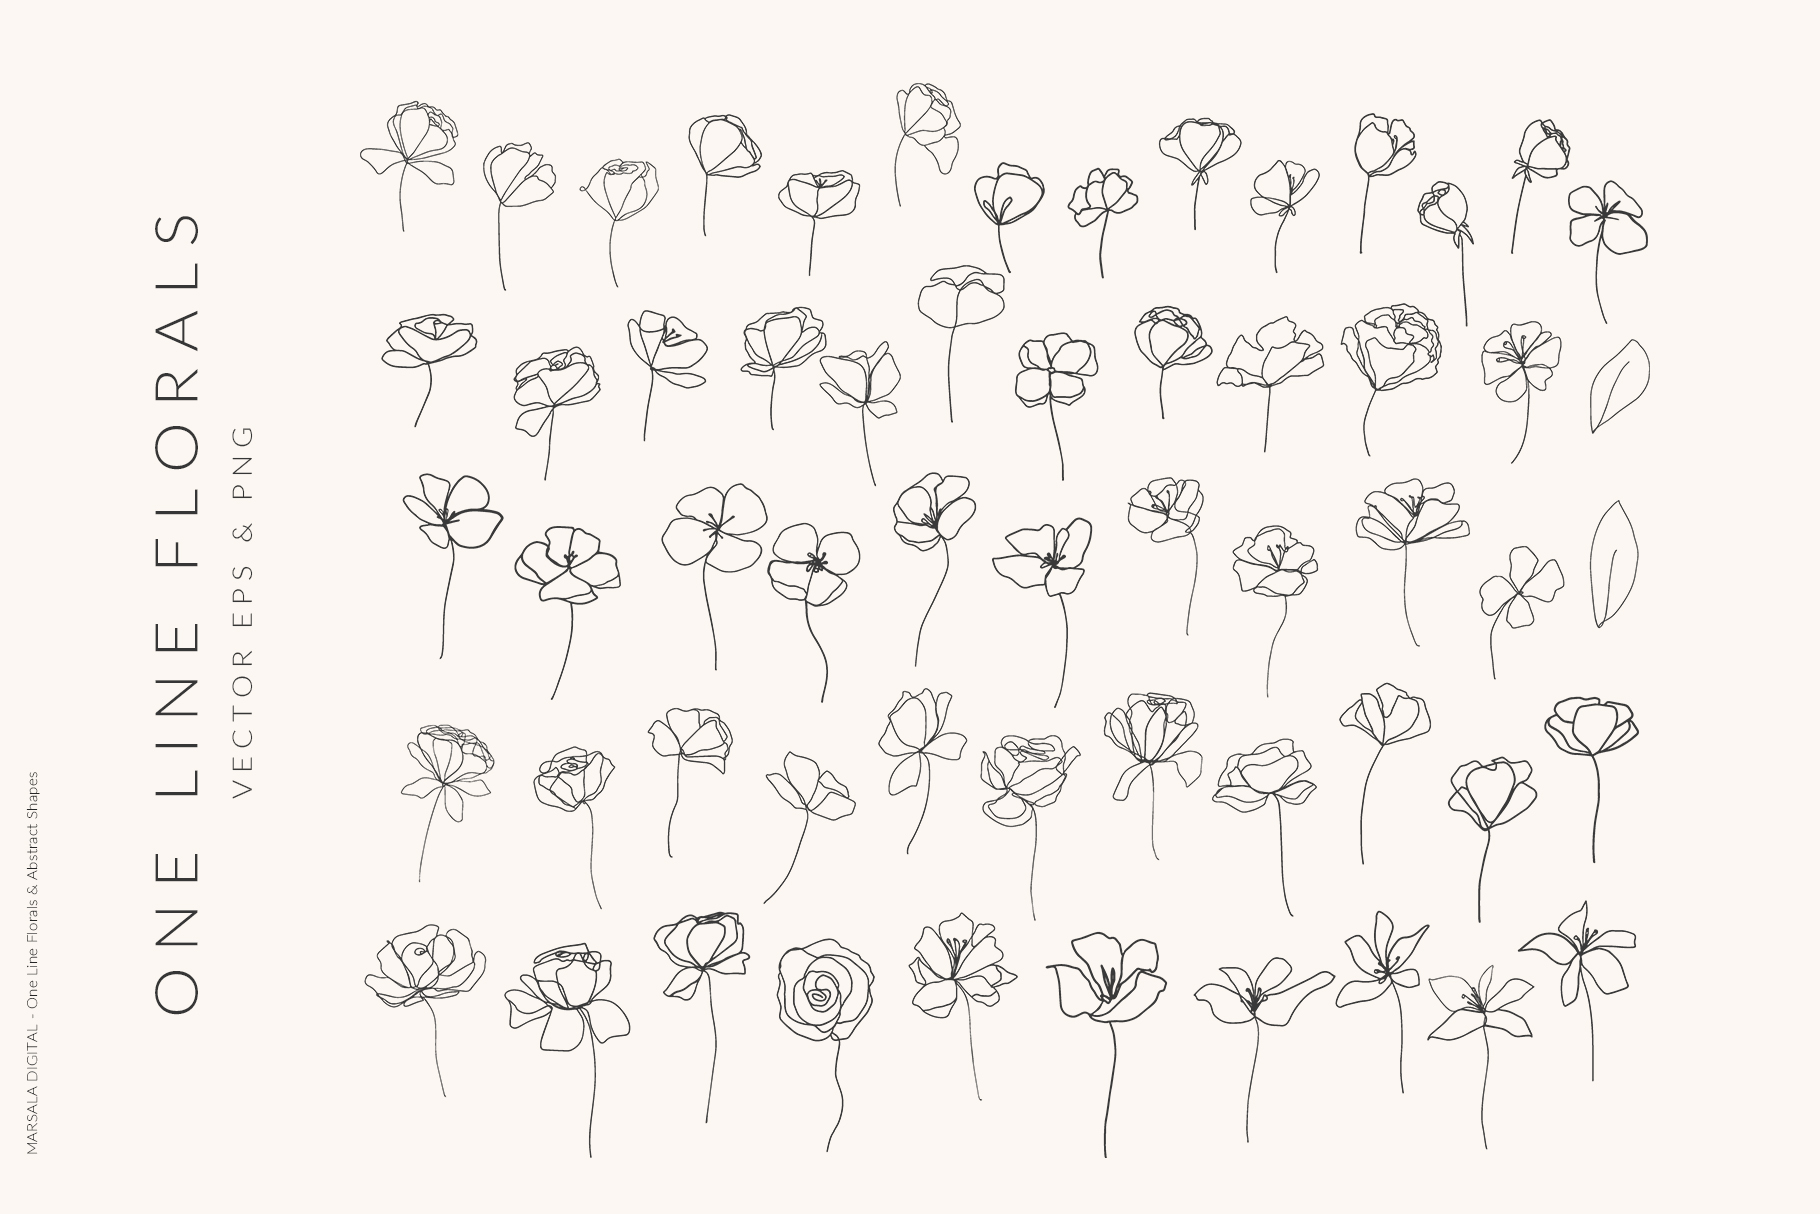 One Line Floral Drawings - Abstract Graphics